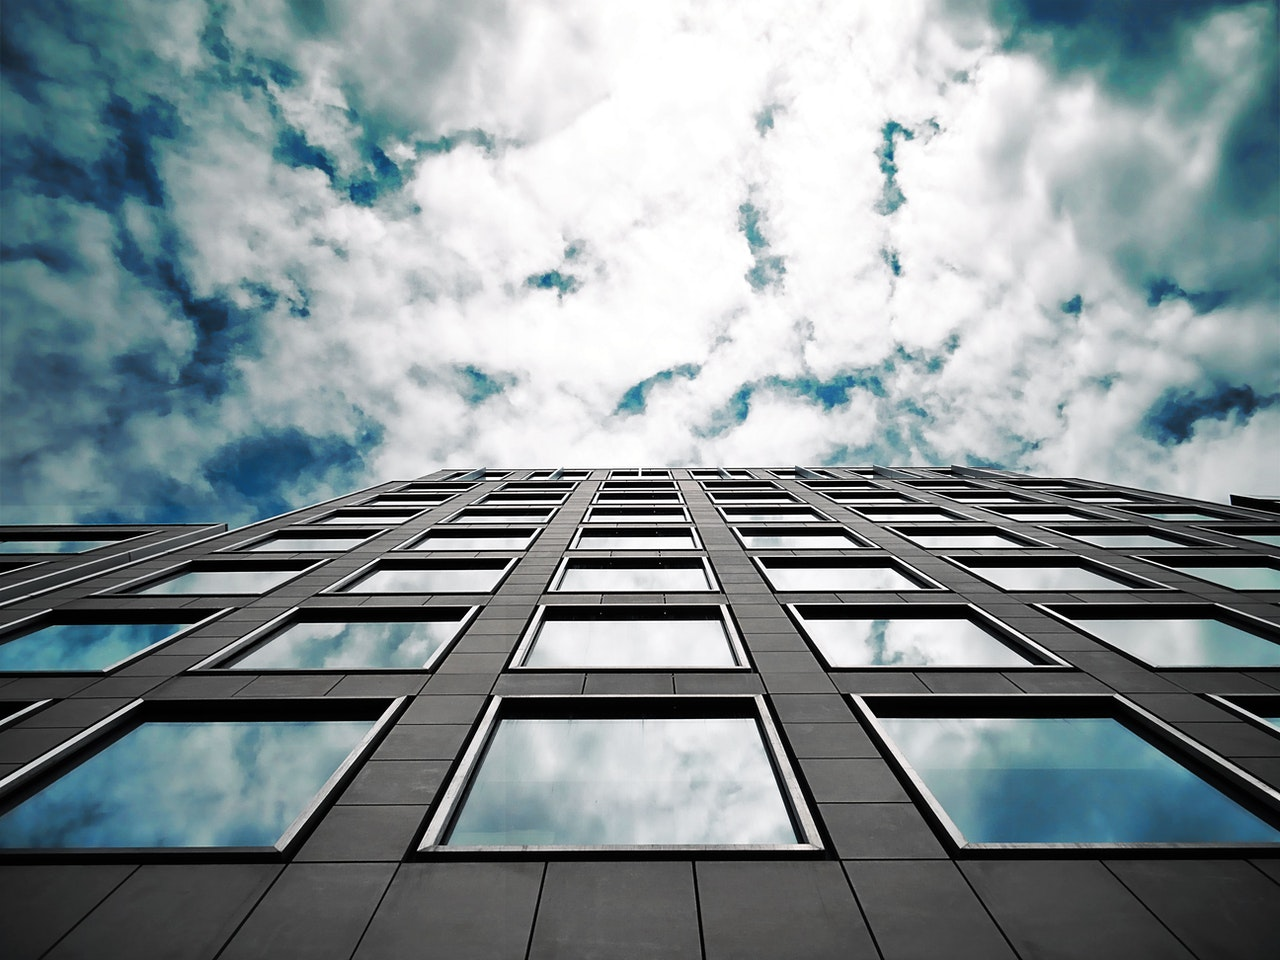 How Much Does Window Cleaning Cost In Toronto? | Price Estimate For Professional Window Cleaning Services